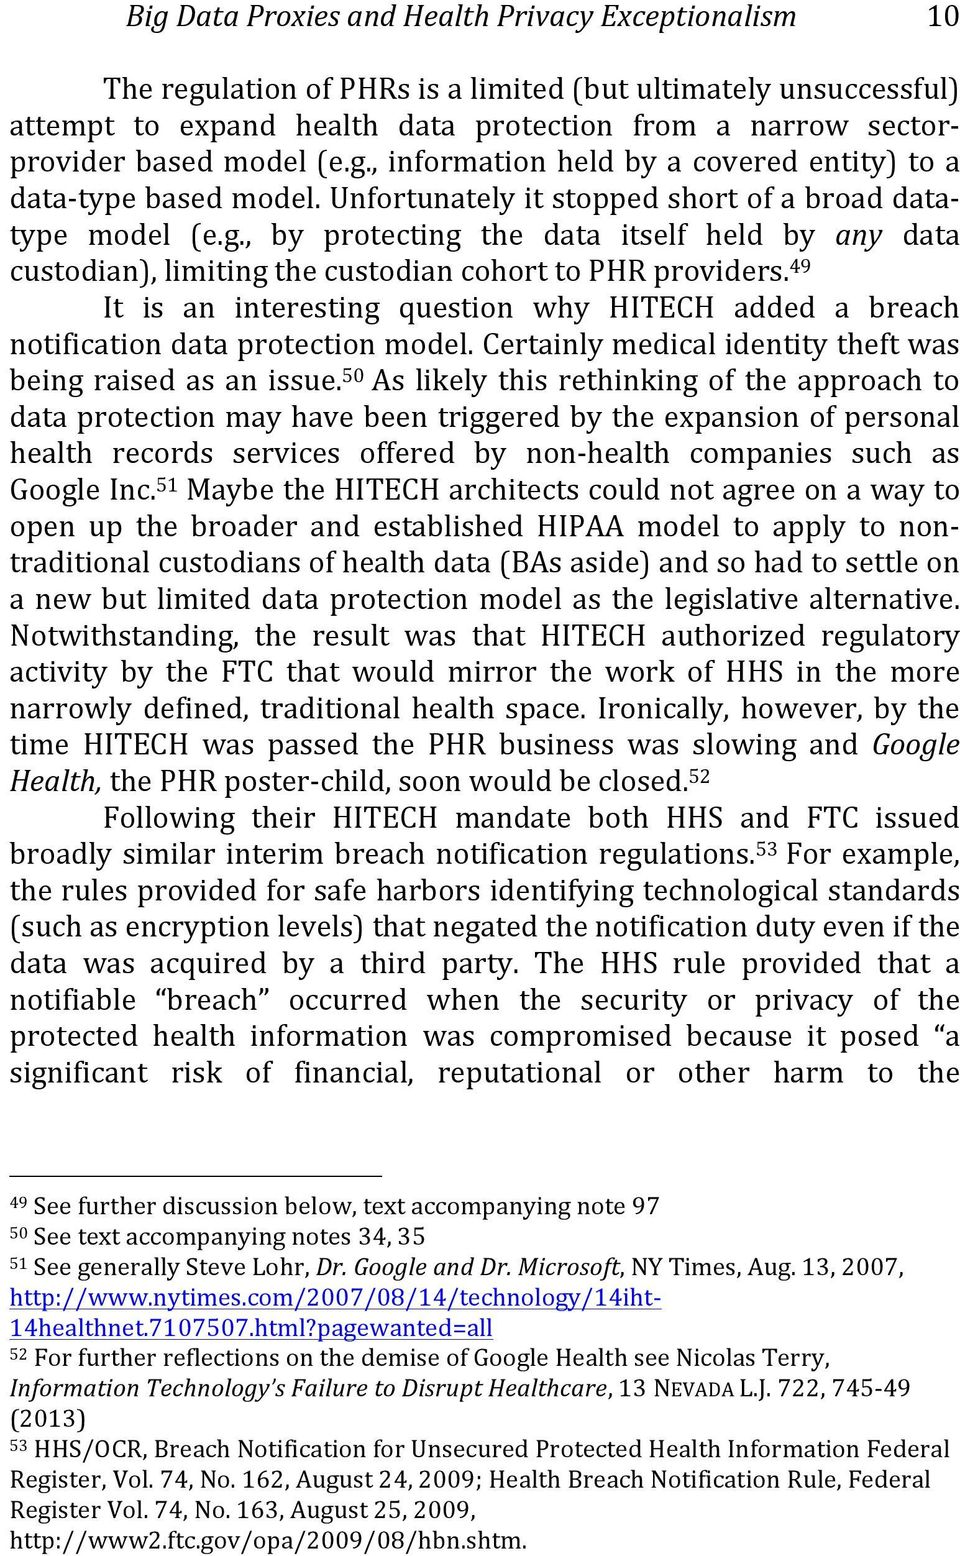 49 It is an interesting question why HITECH added a breach notification data protection model. Certainly medical identity theft was being raised as an issue.